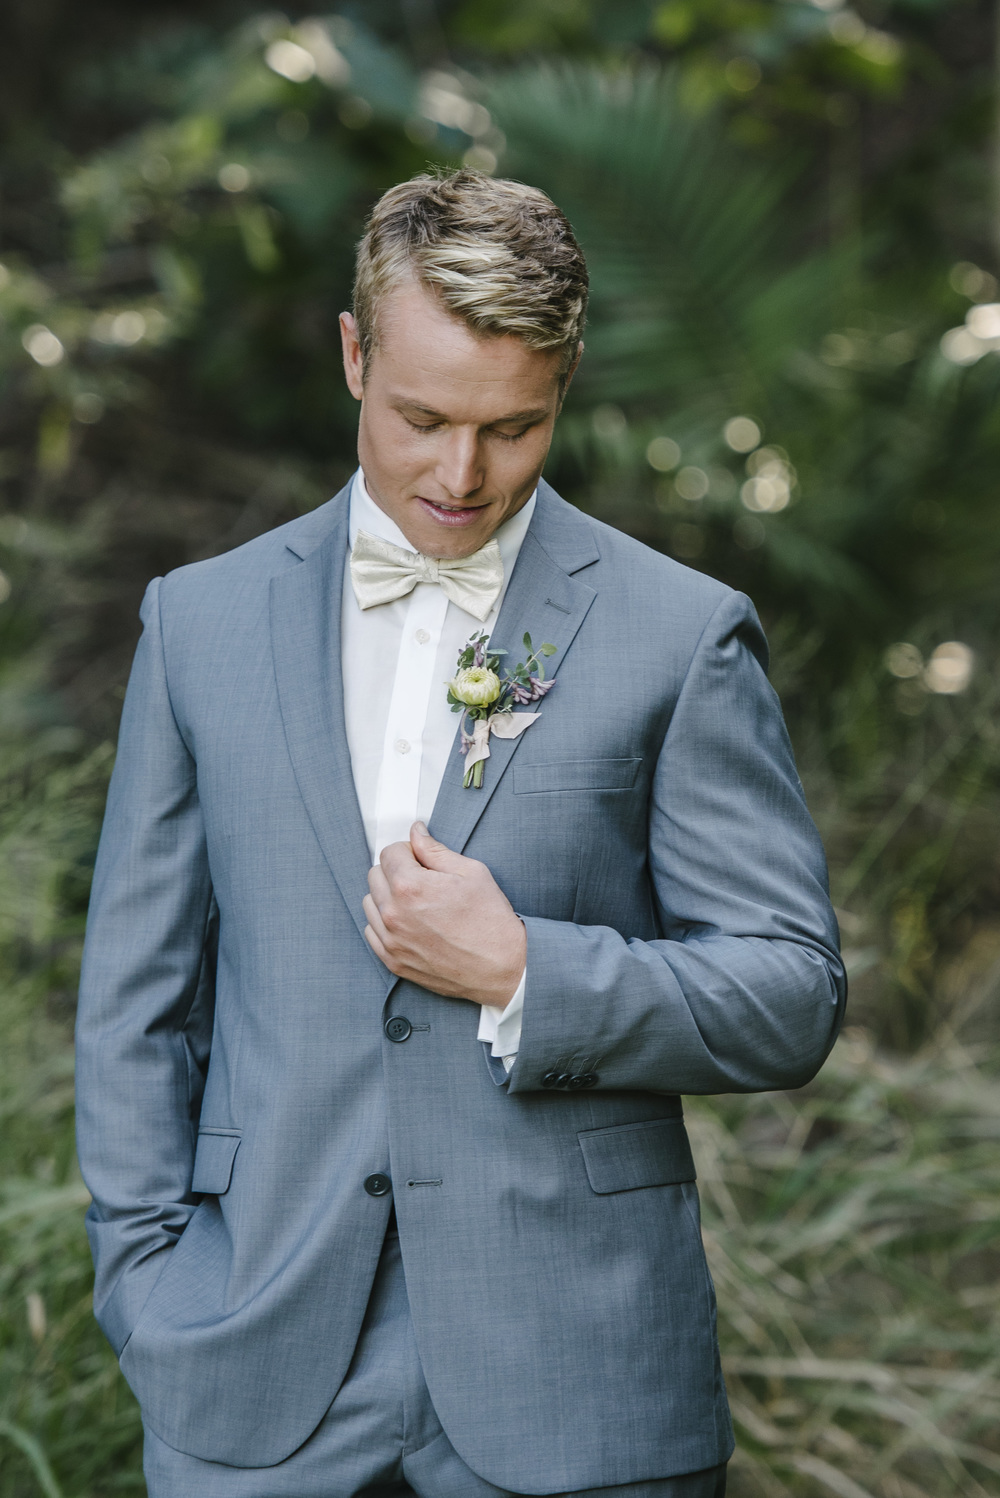 Old Fashioned Wedding Suit Hire Cardiff Festooning - Colorful ...